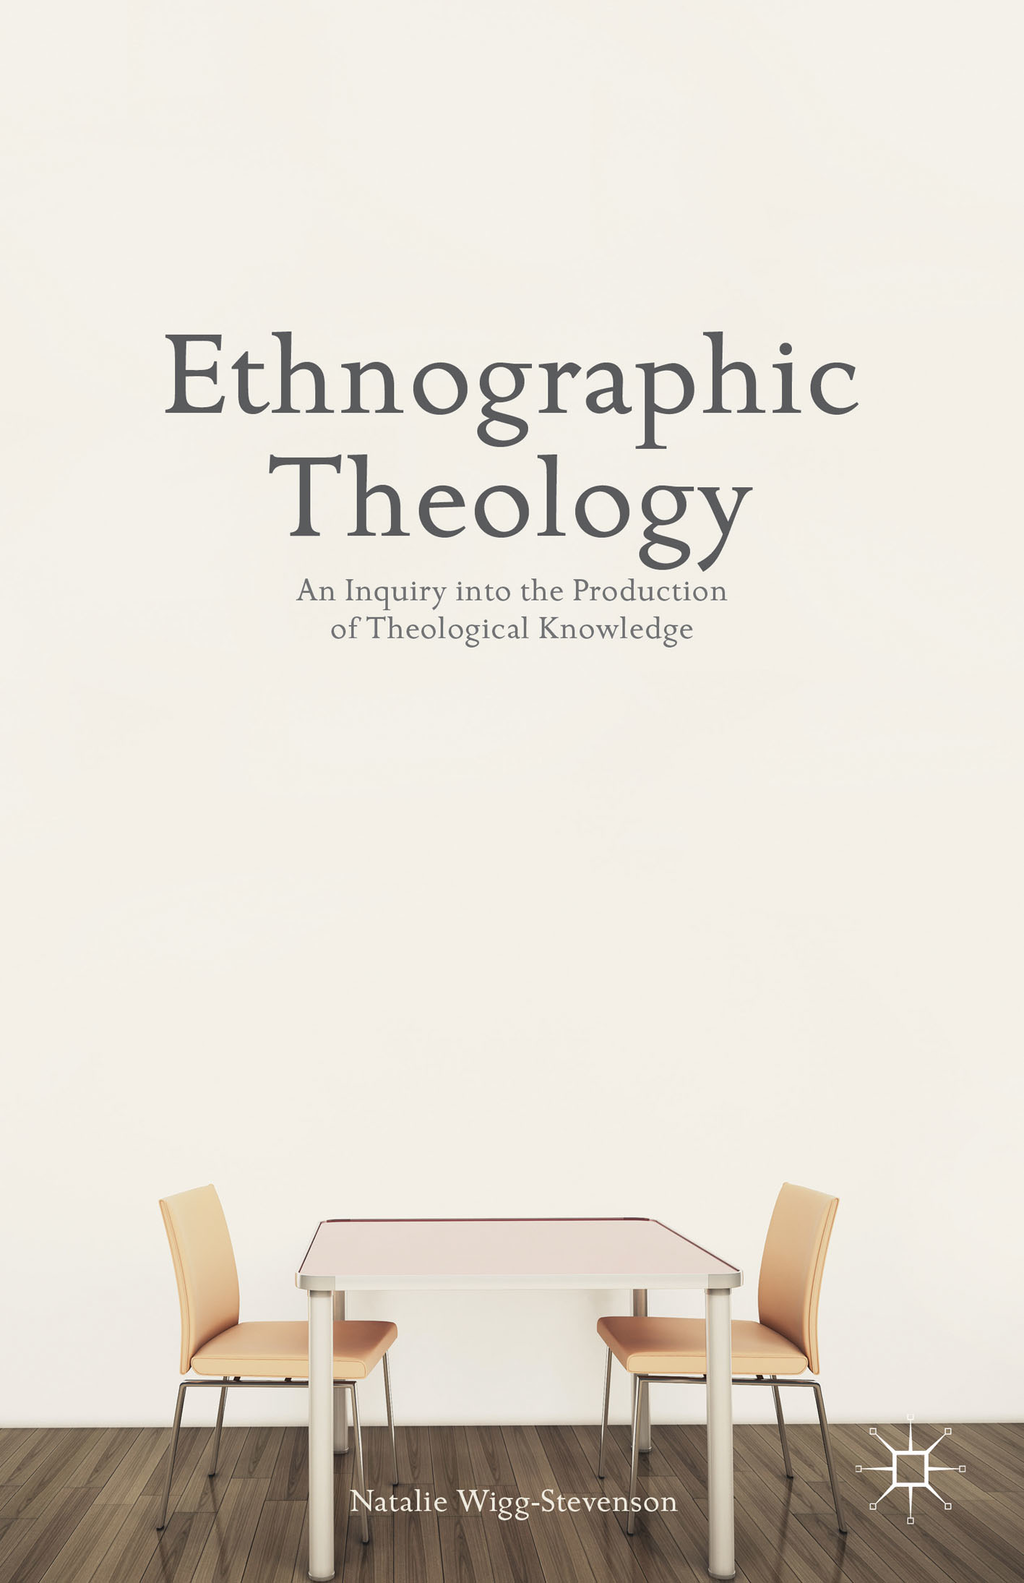 Ethnographic Theology An Inquiry into the Production of Theological Knowledge